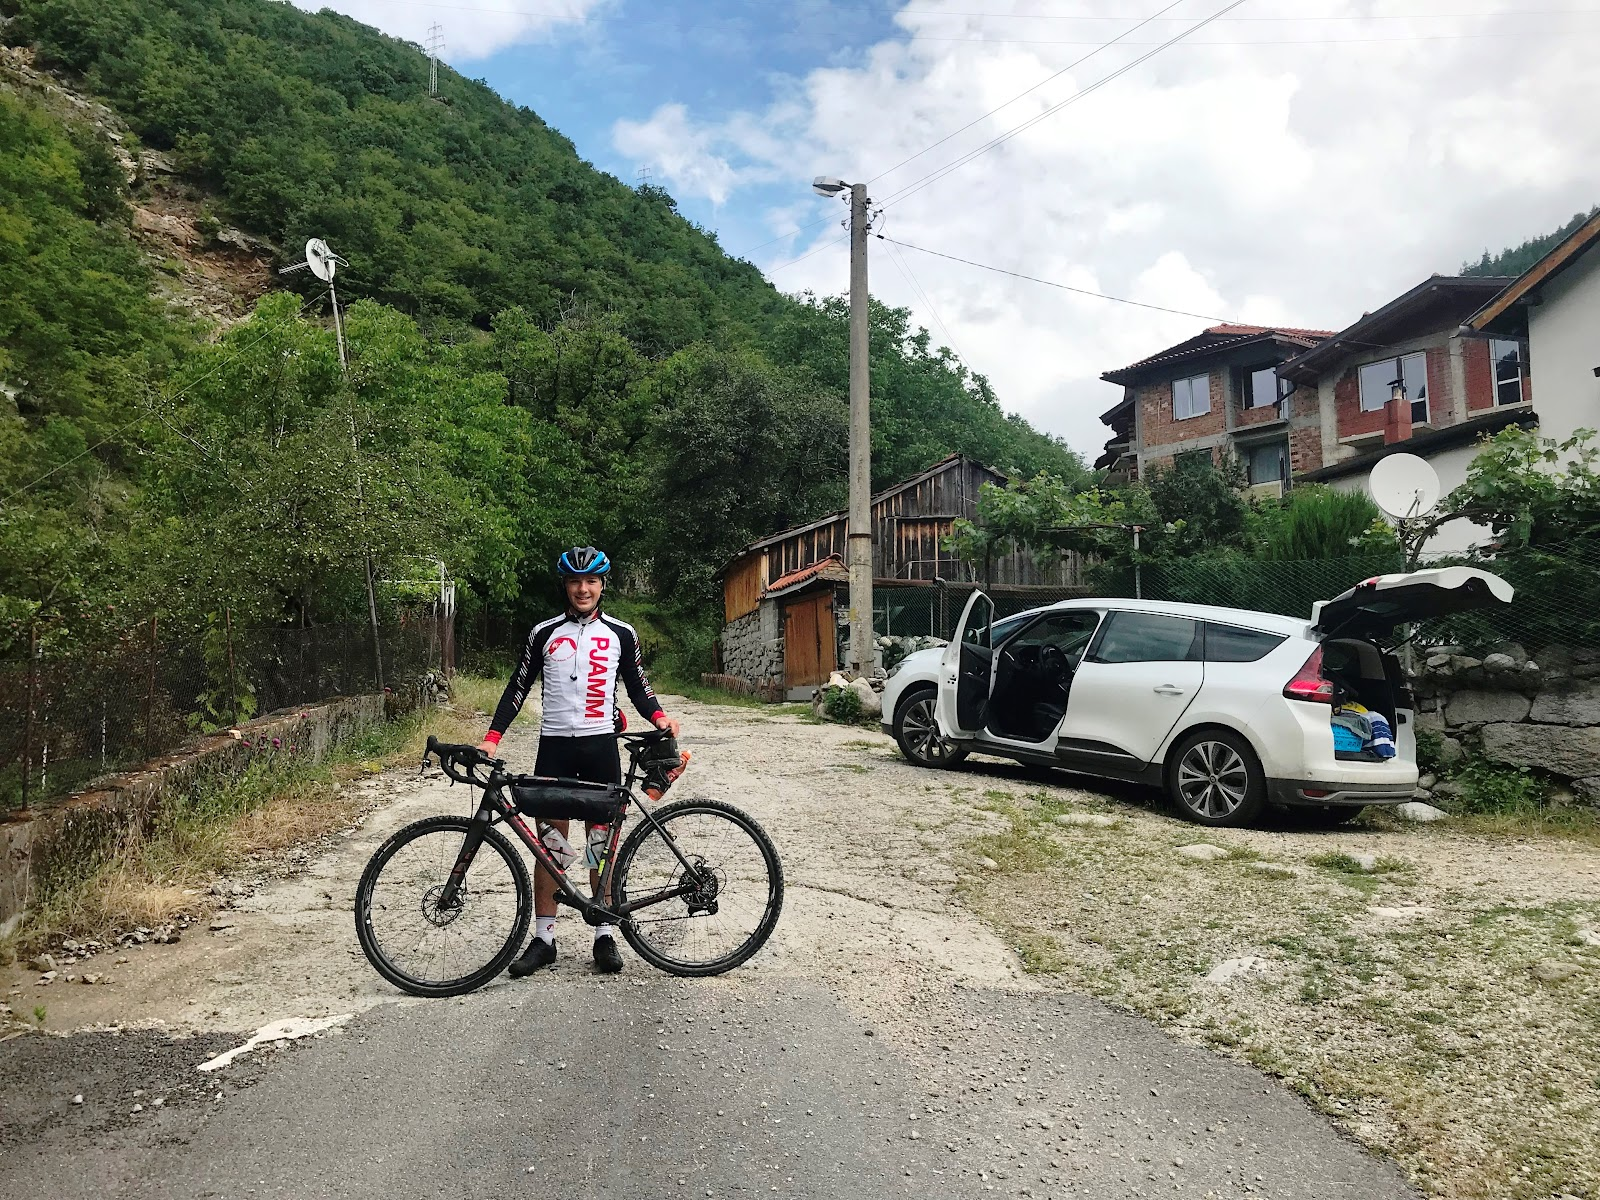 PJAMM Cyclist at the start of 5th hardest bike climb in the world.